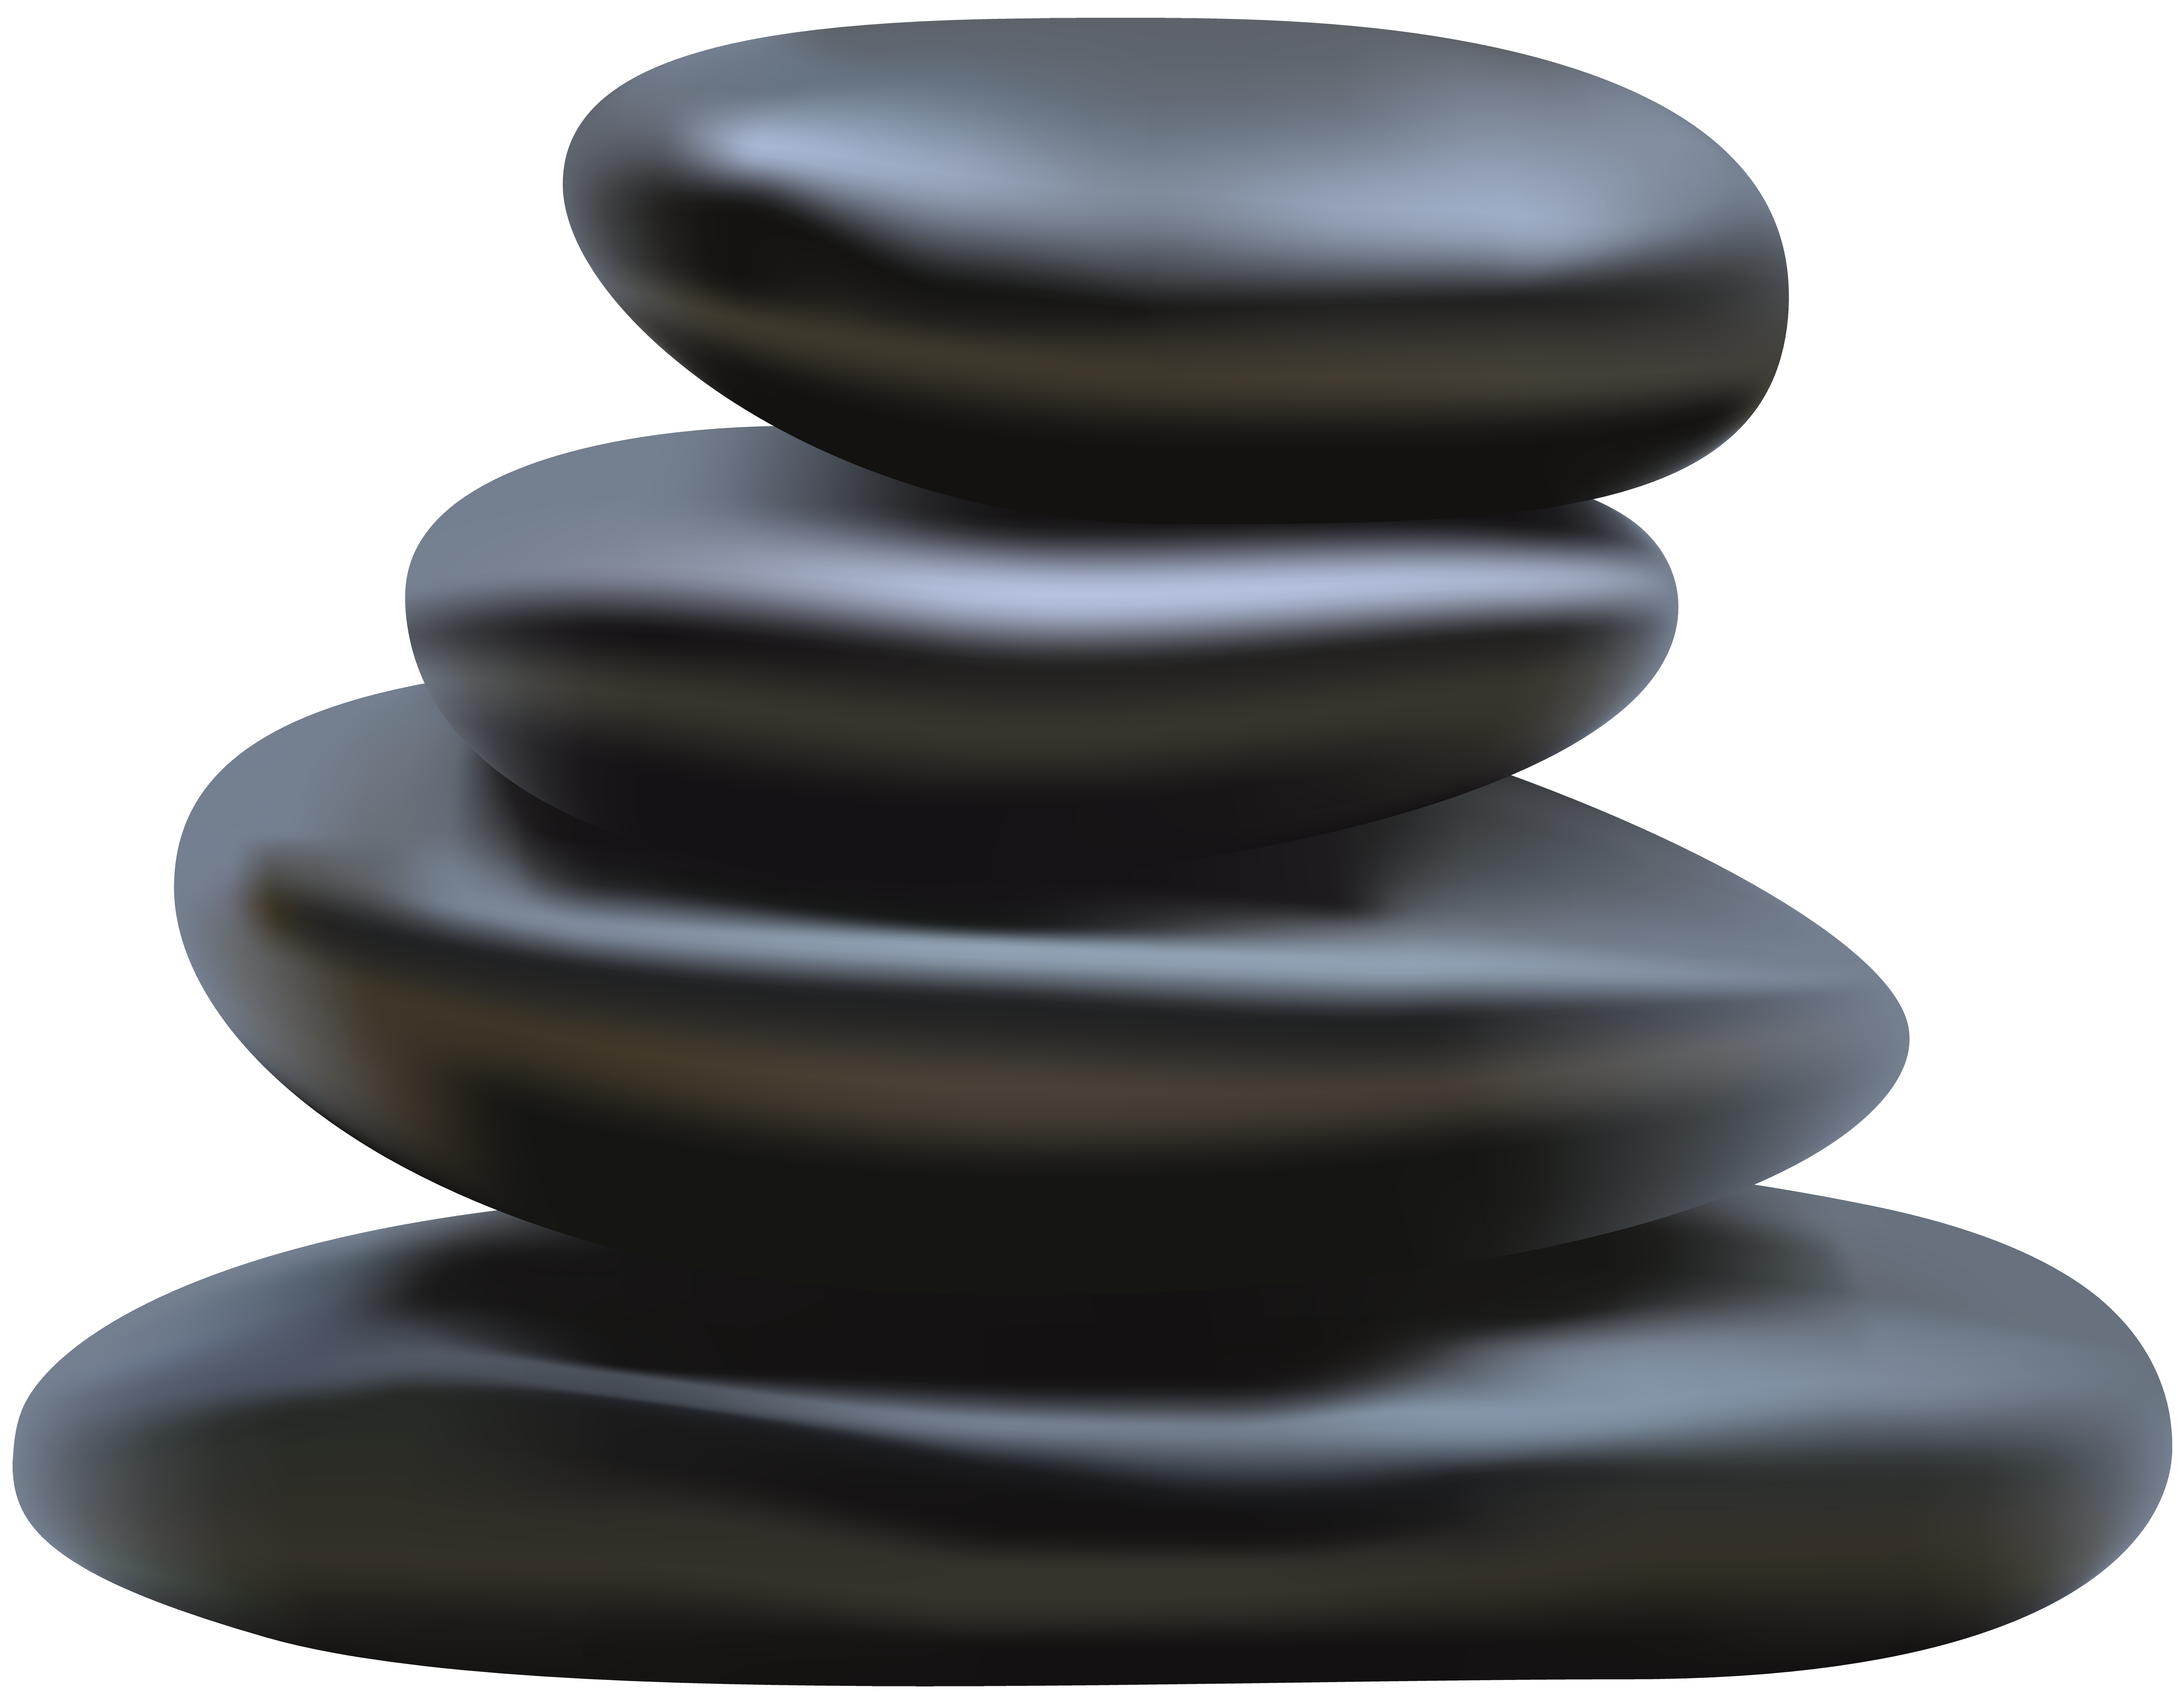 Spa Stones PNG Clip Art Image.